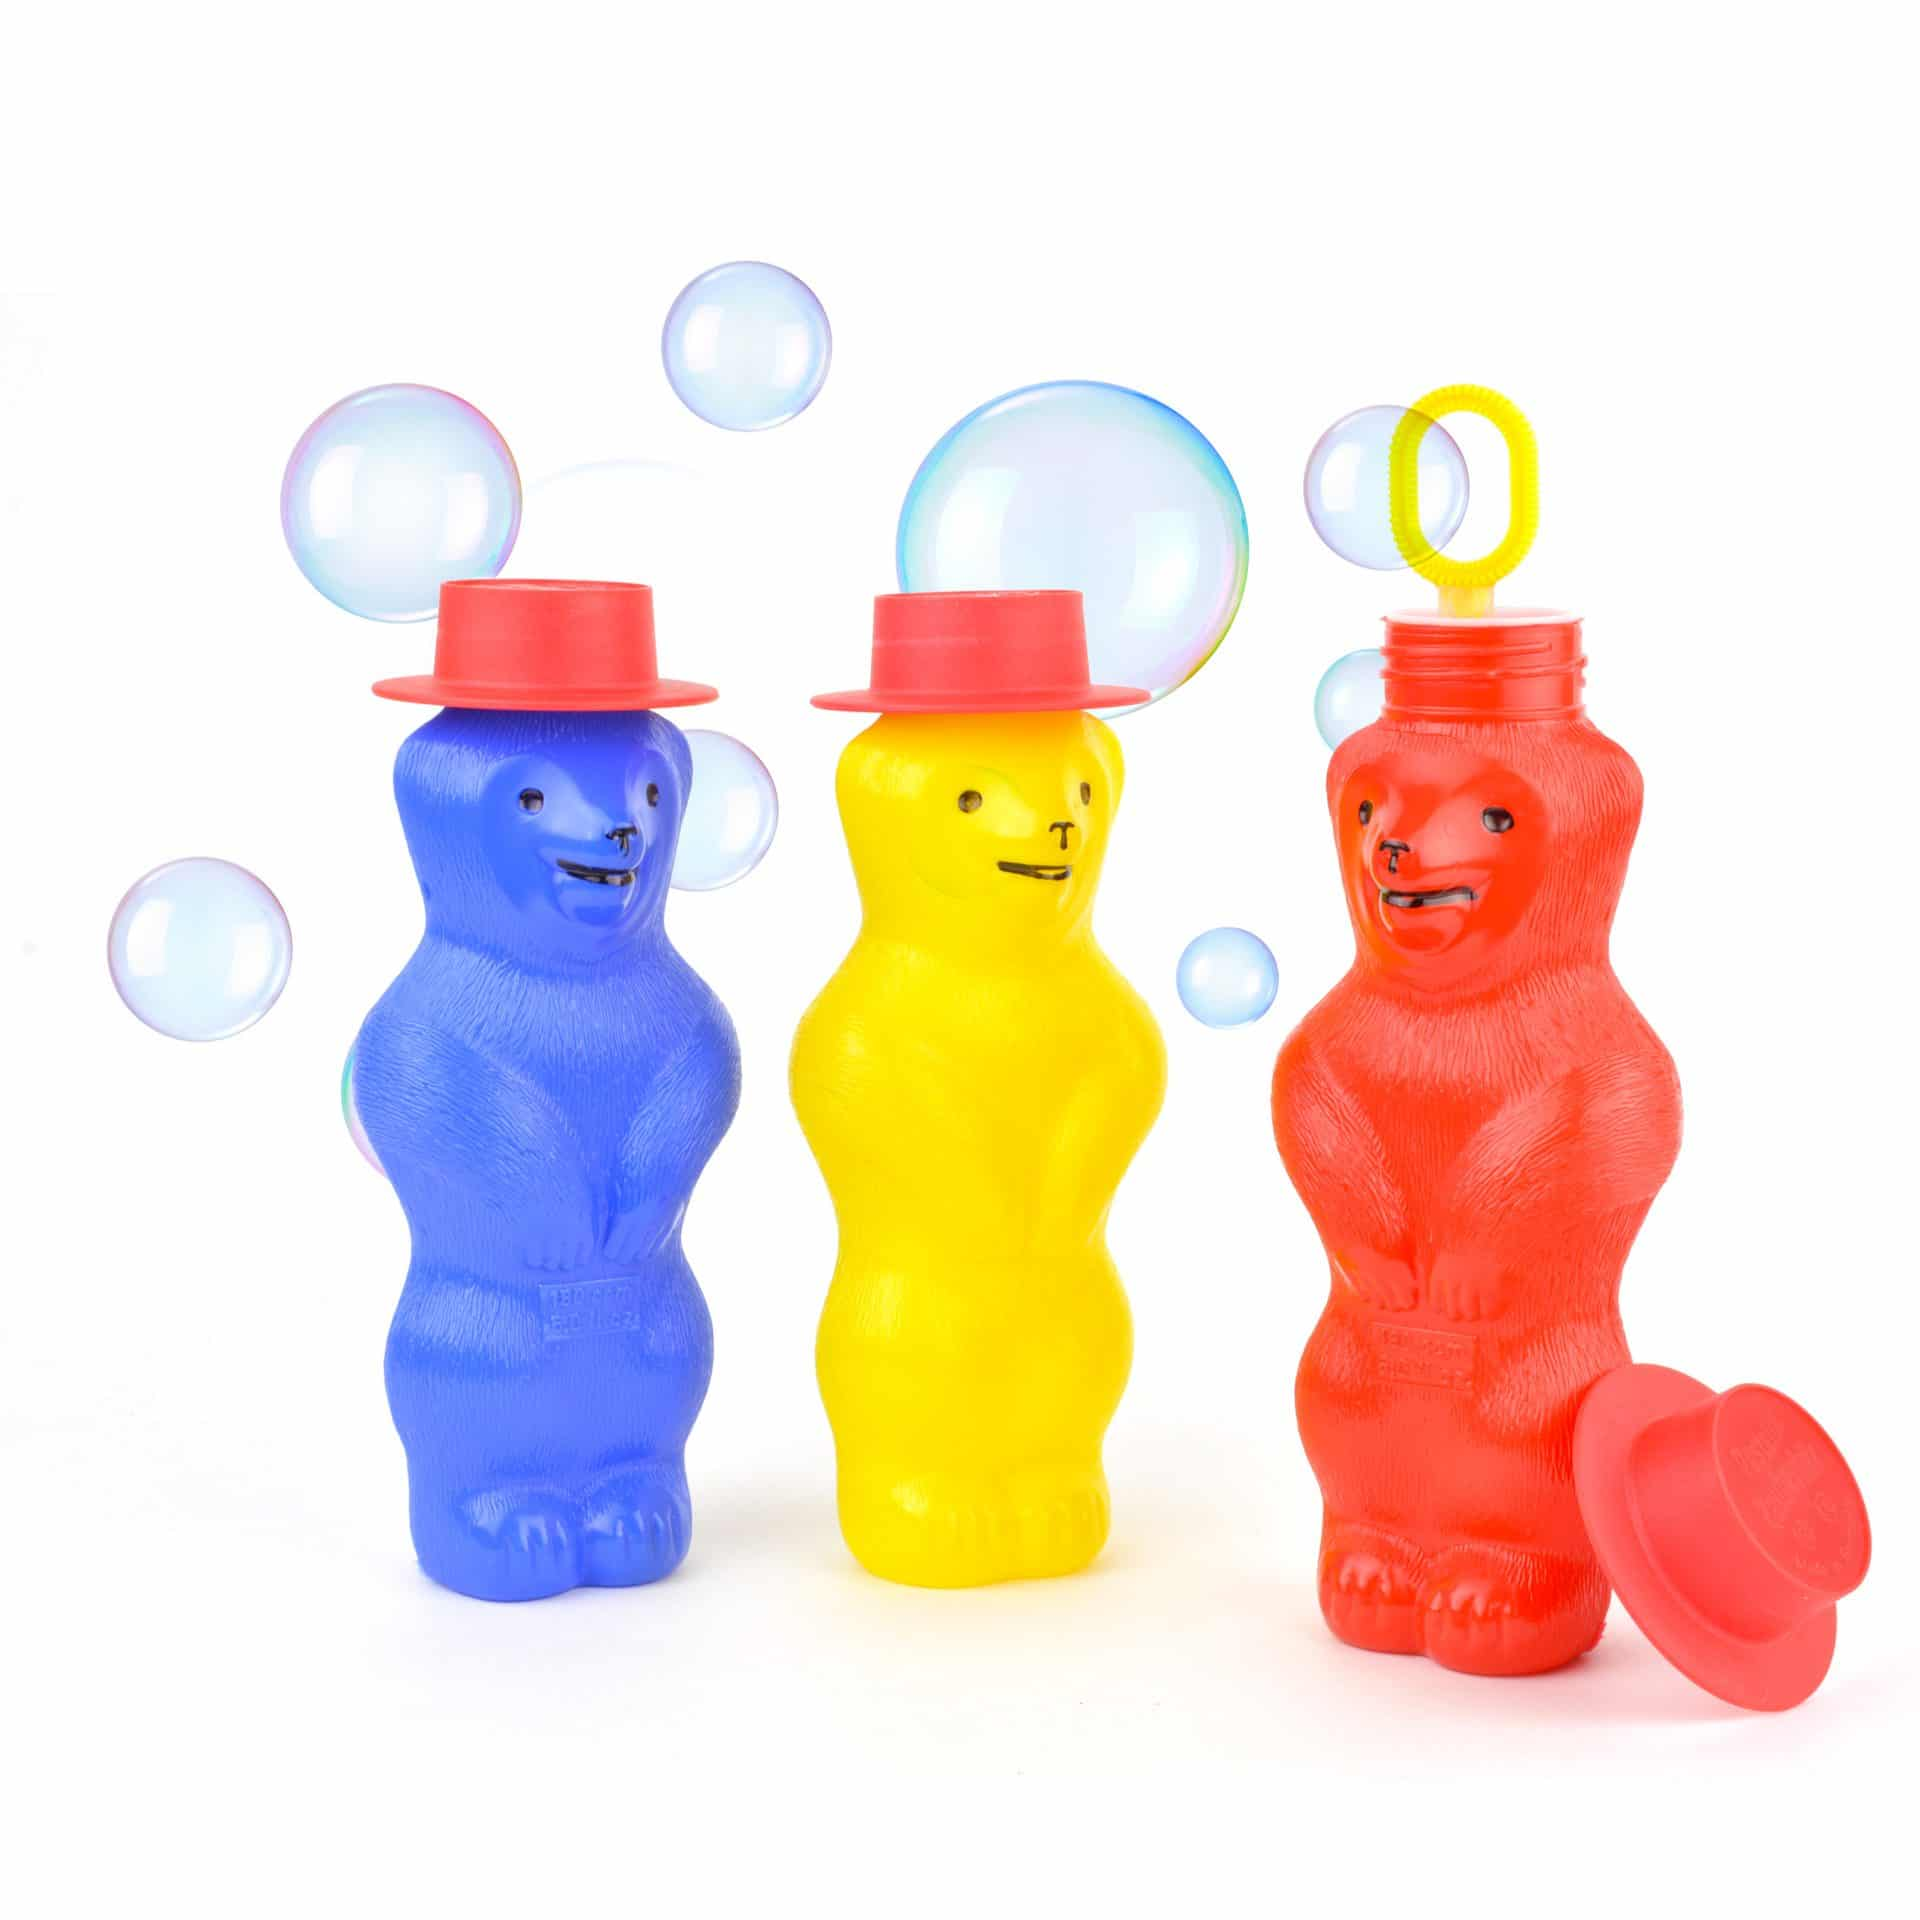 Bear-shaped container with built-in bubble wand